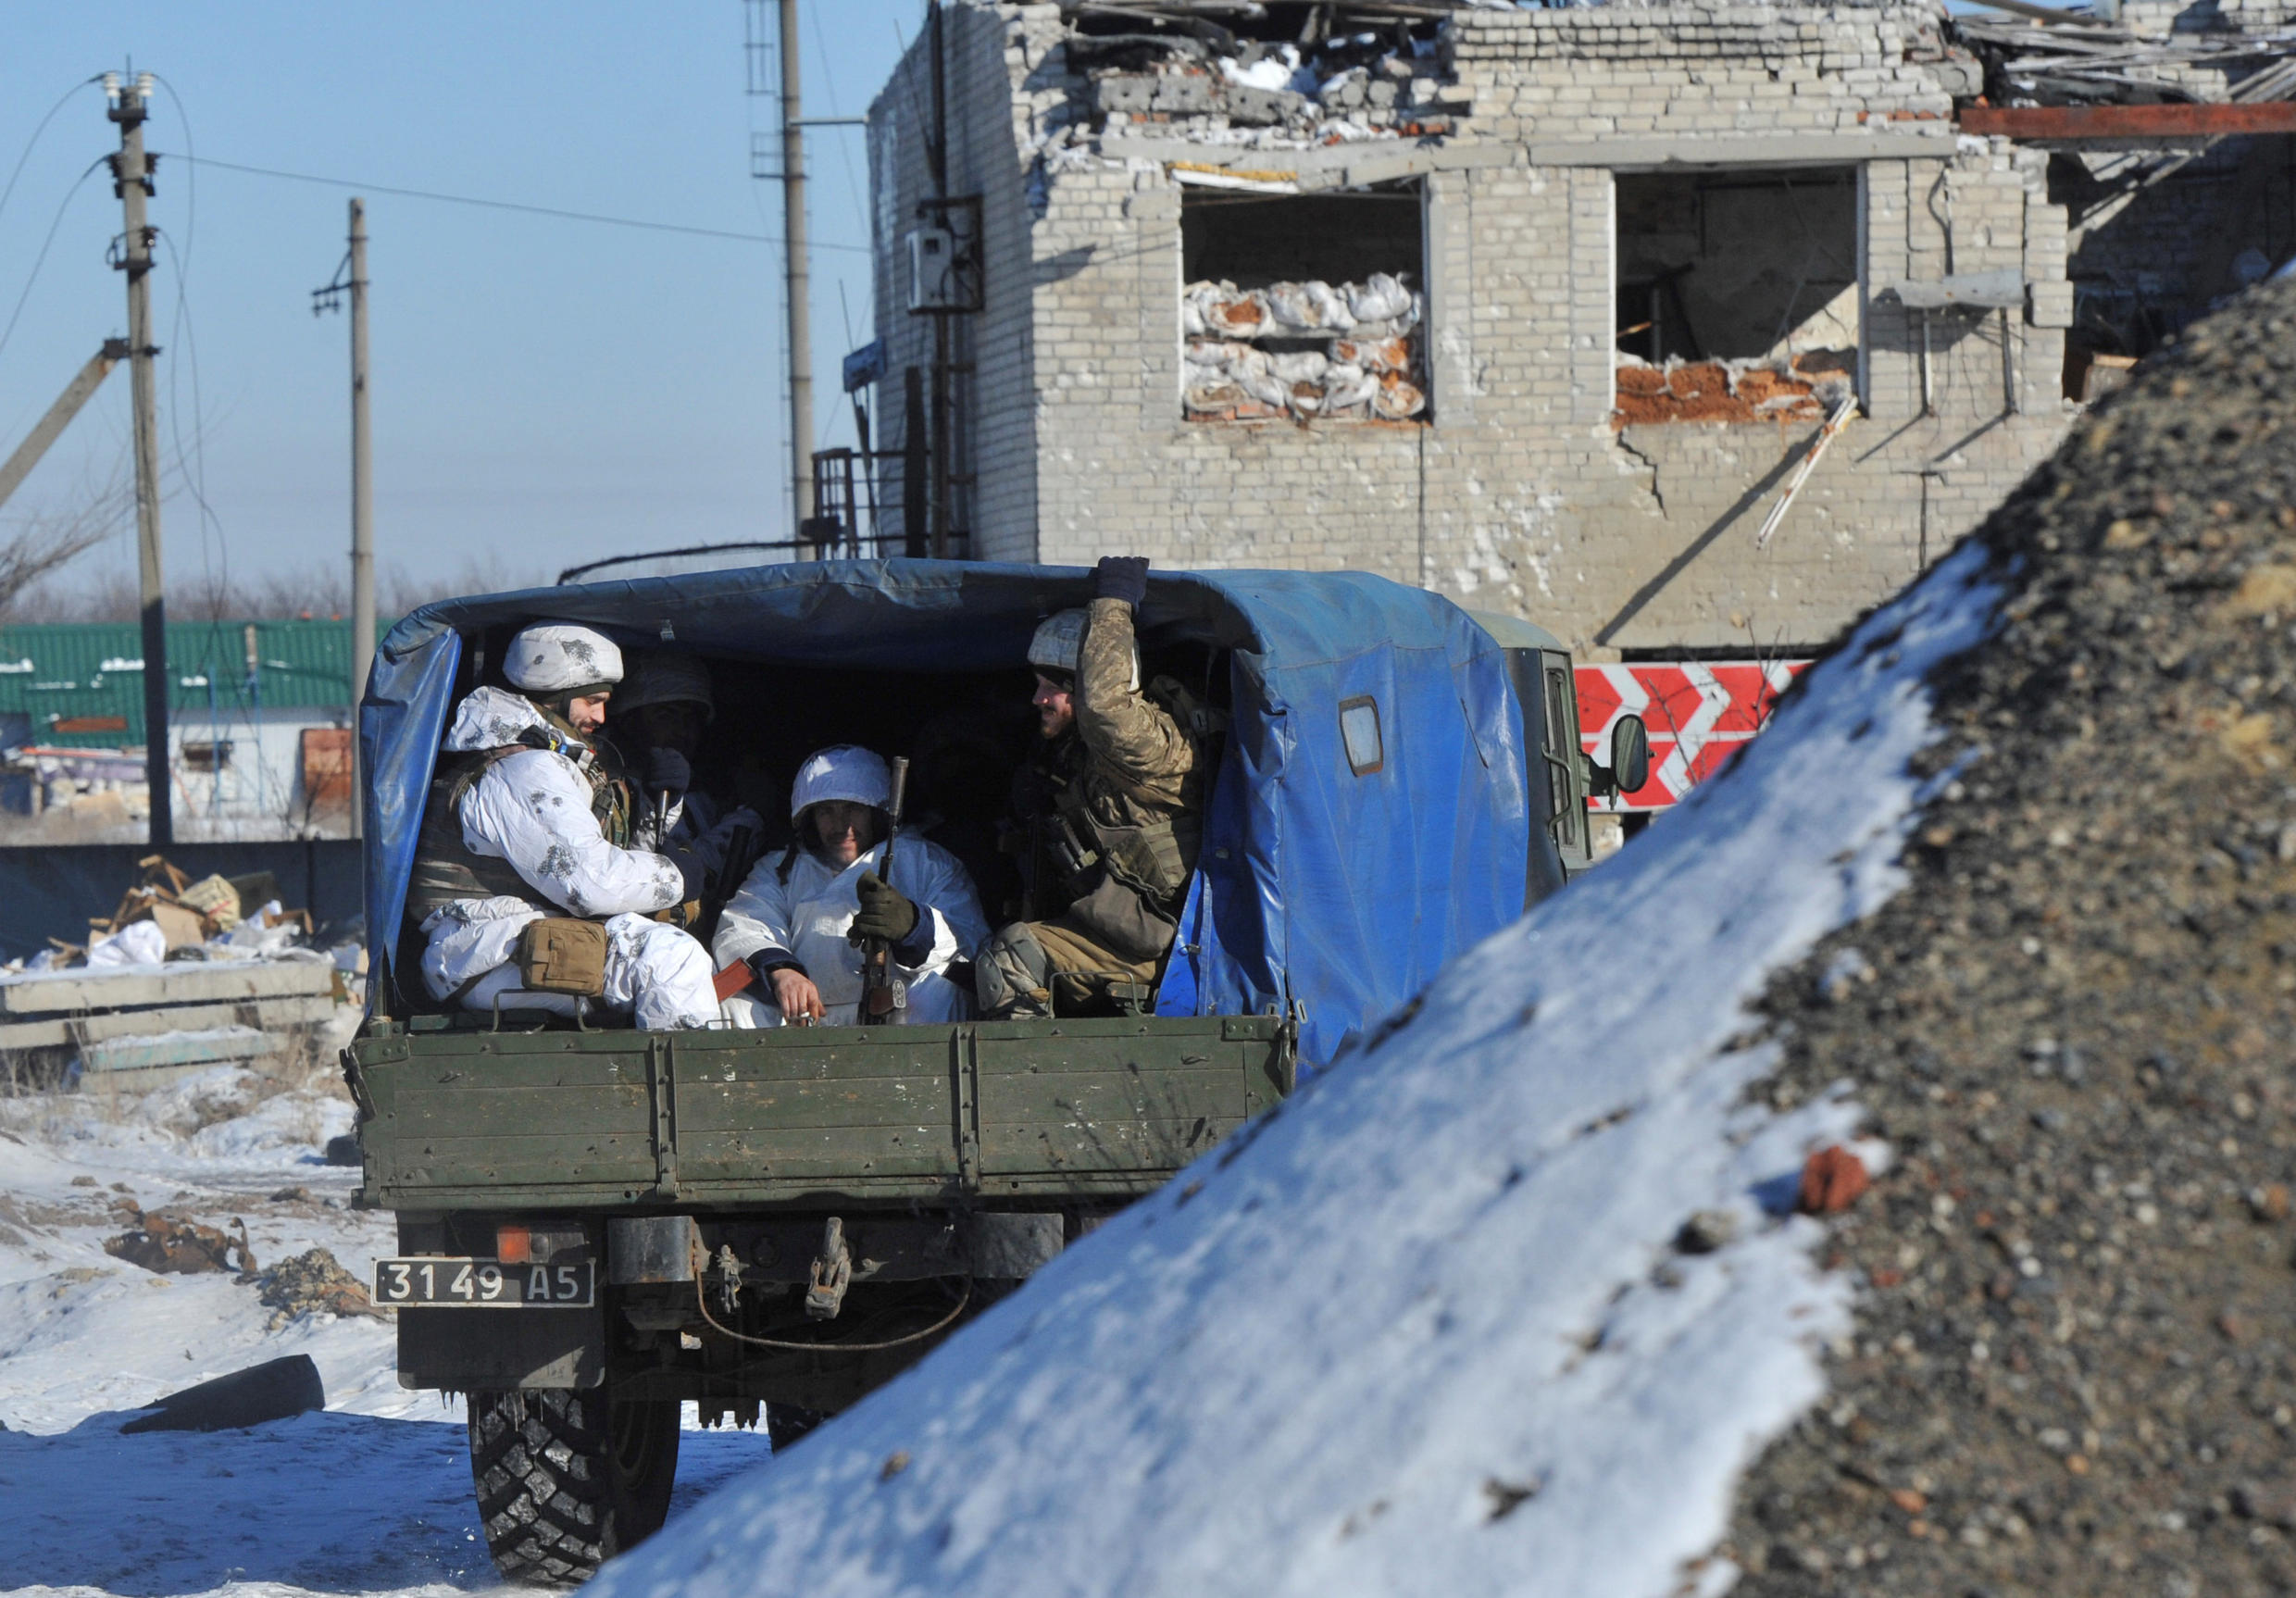 Members of the Ukrainian armed forces drive a military vehicle at their position on the front line near the government-held town of Avdiyivka, 9 February, 2017